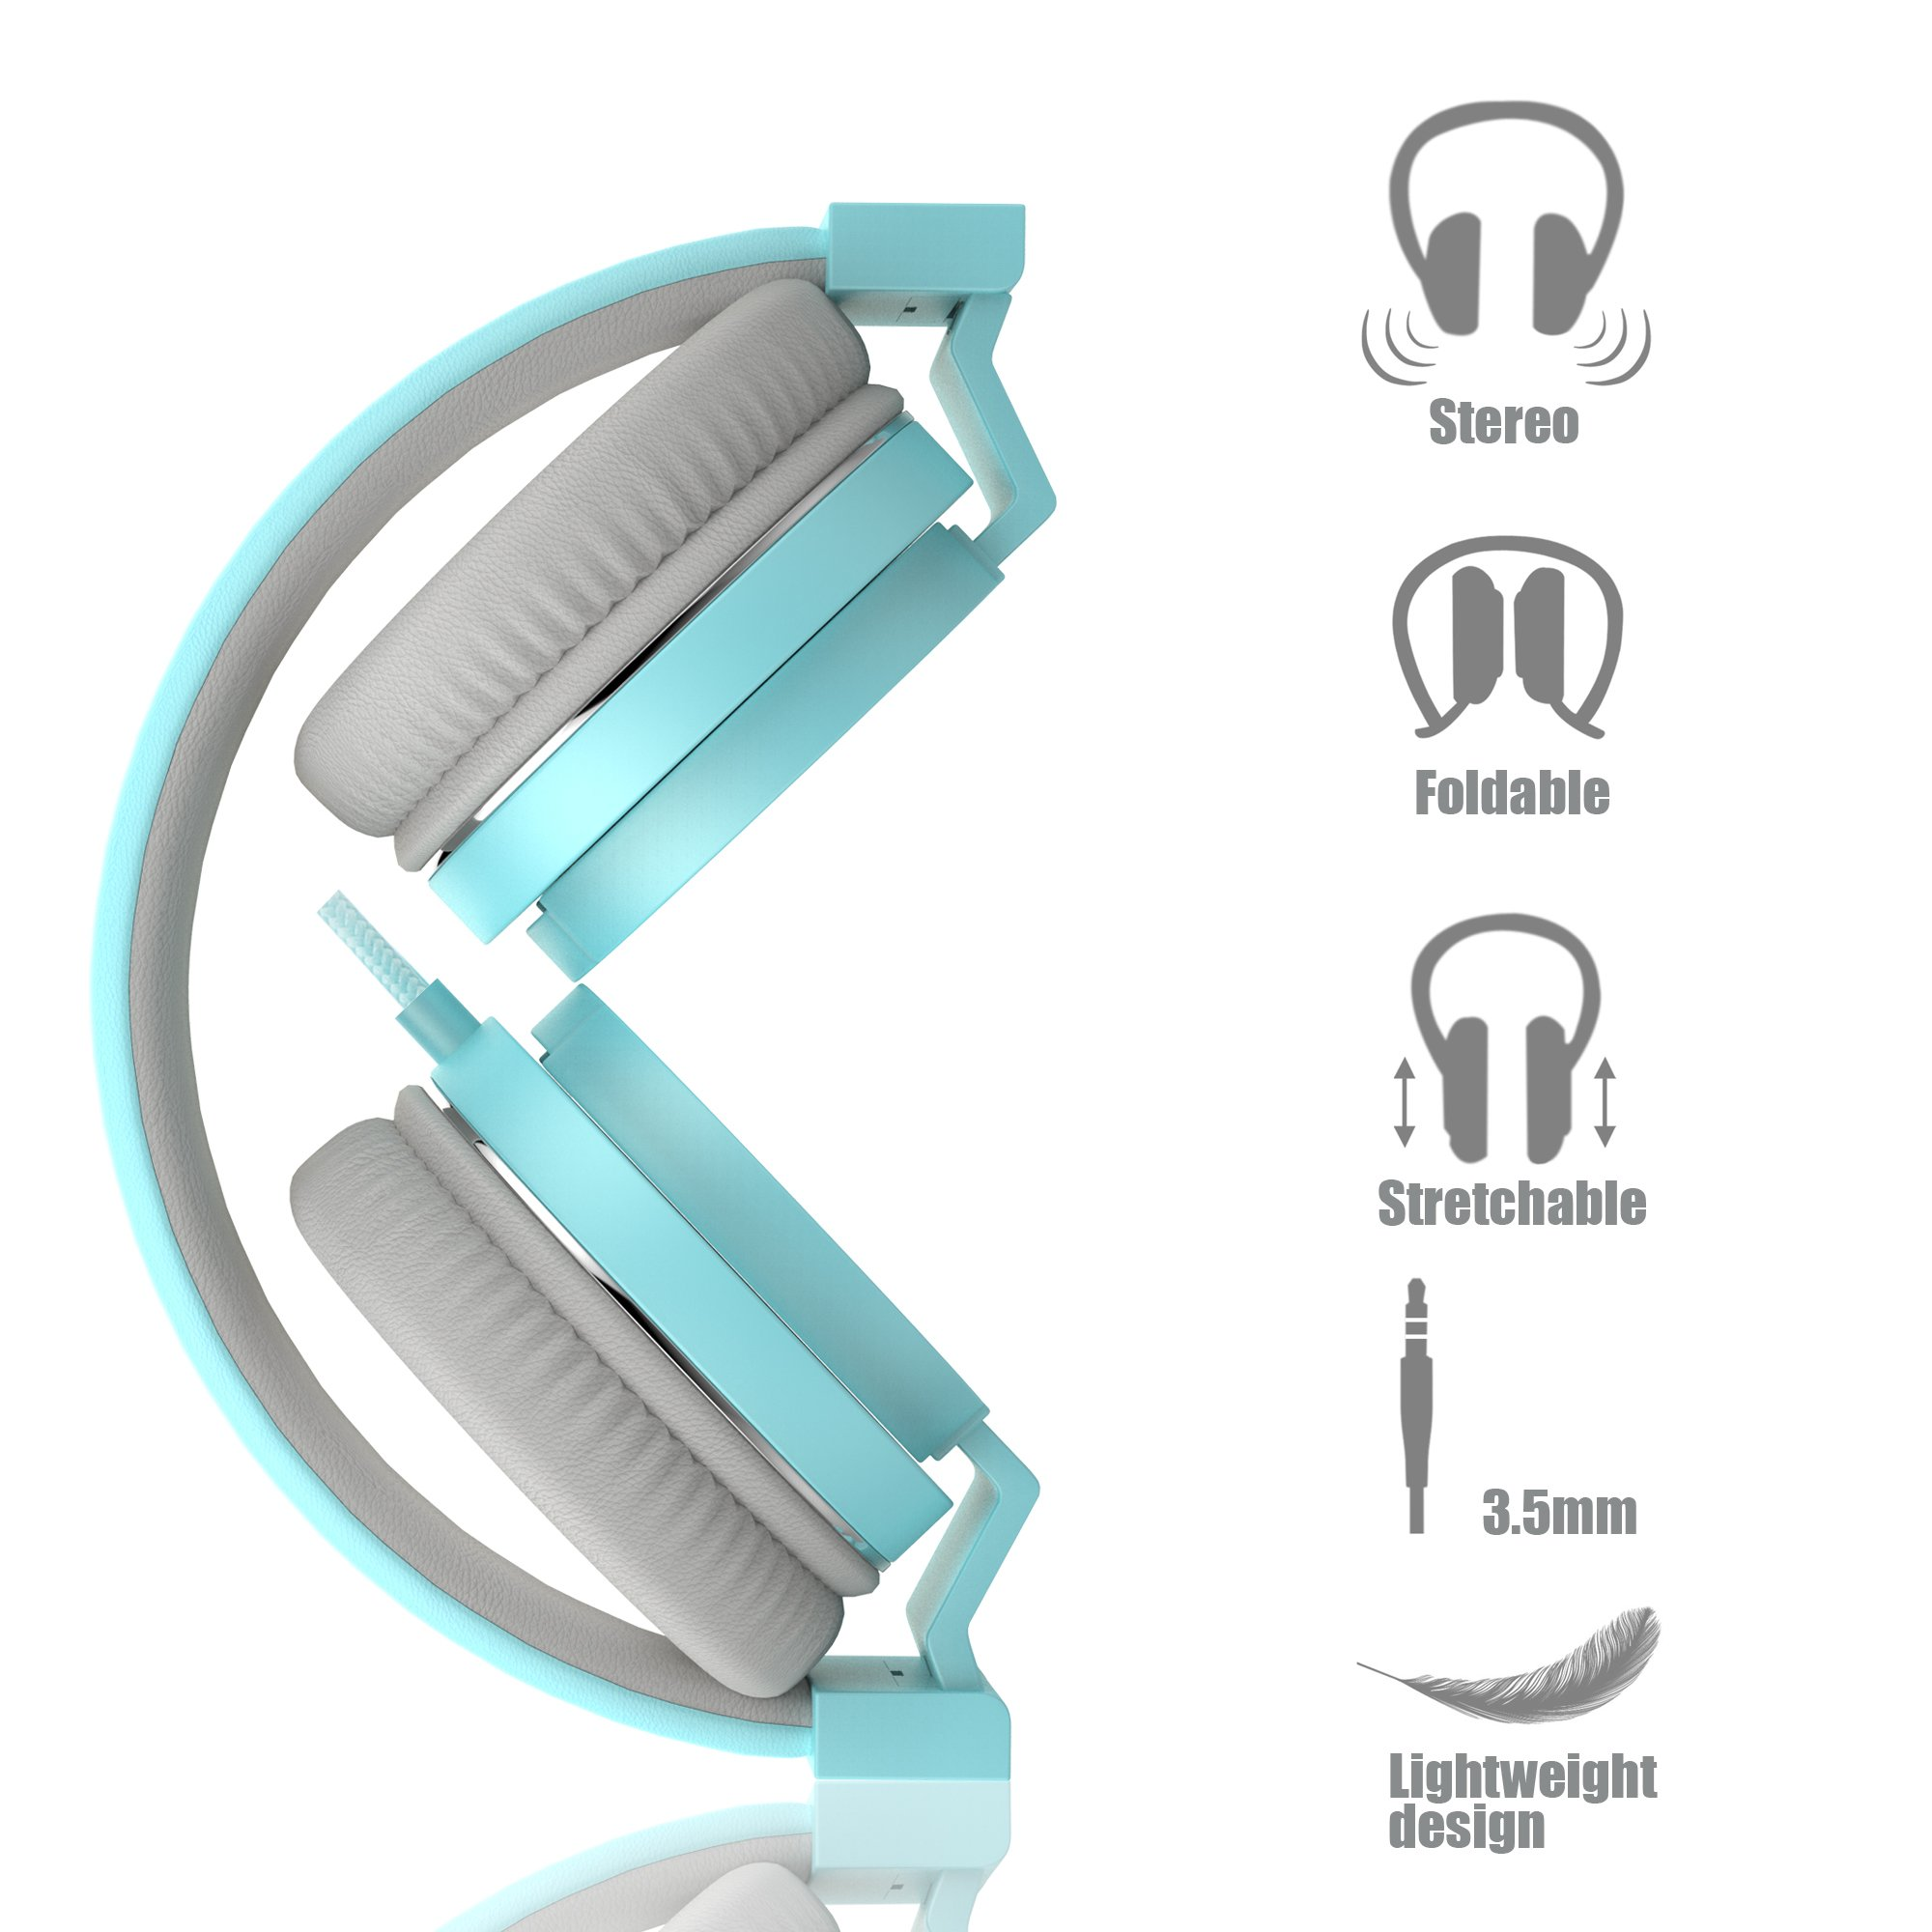 Wired Portable Headsets, Foldable Headphones with Microphone and Volume Control On Ear Headphones for iPhone iPad Android Smartphones Laptop Tablet for Kids or Adults by Vomach (Image #3)